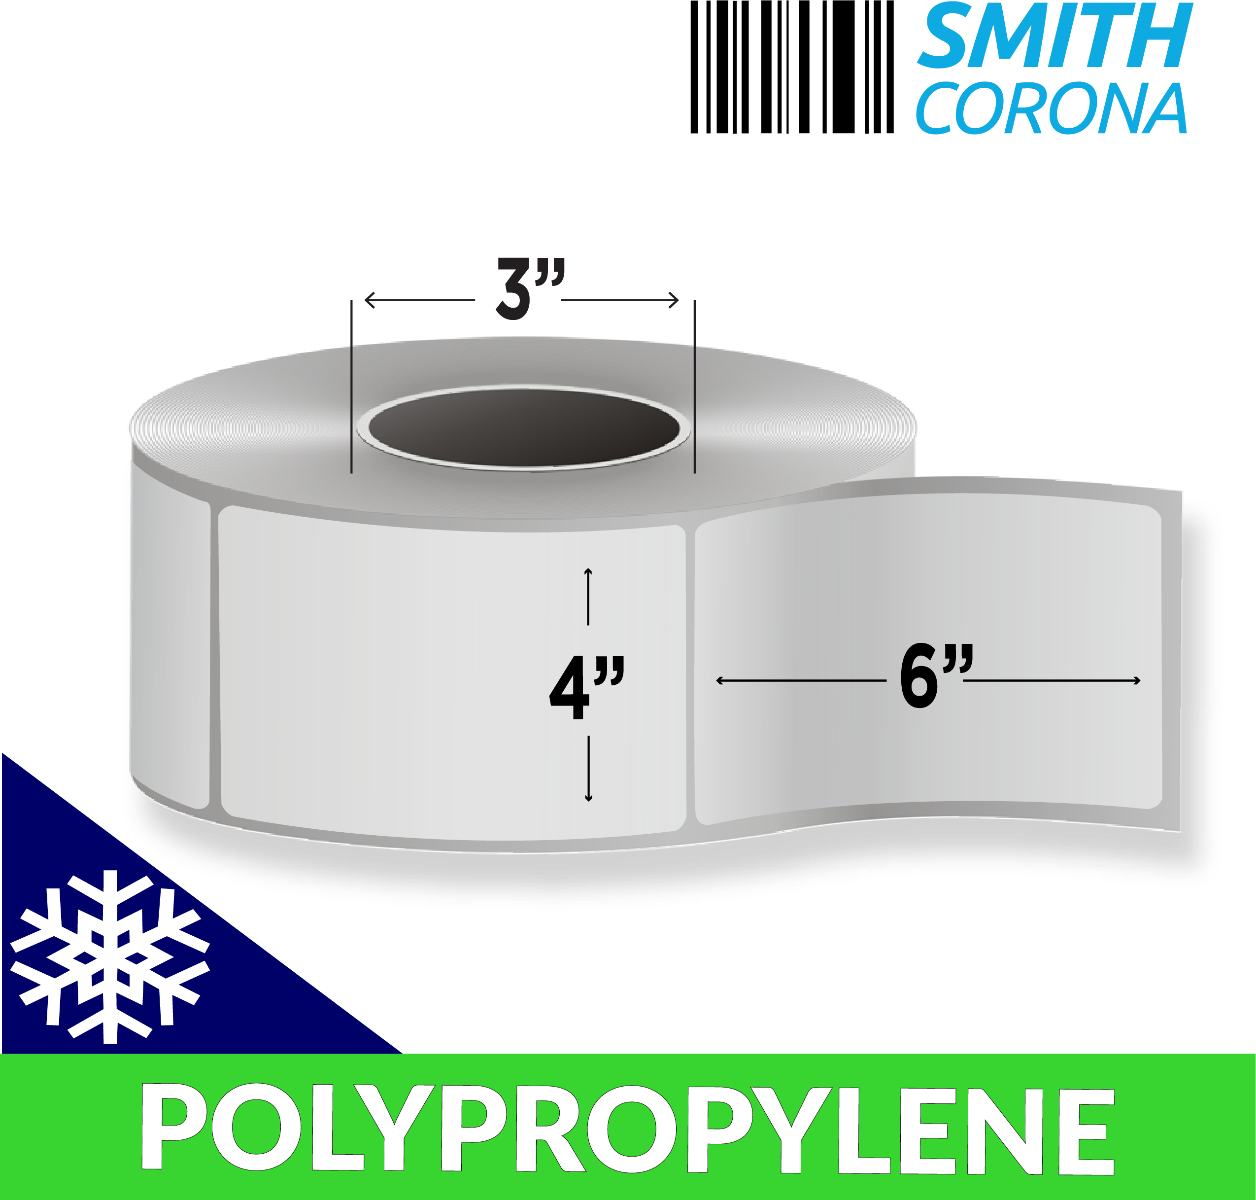 "4"" x 6"" Polypropylene (Freezer Grade) - Direct Thermal Labels - 3"" Core"